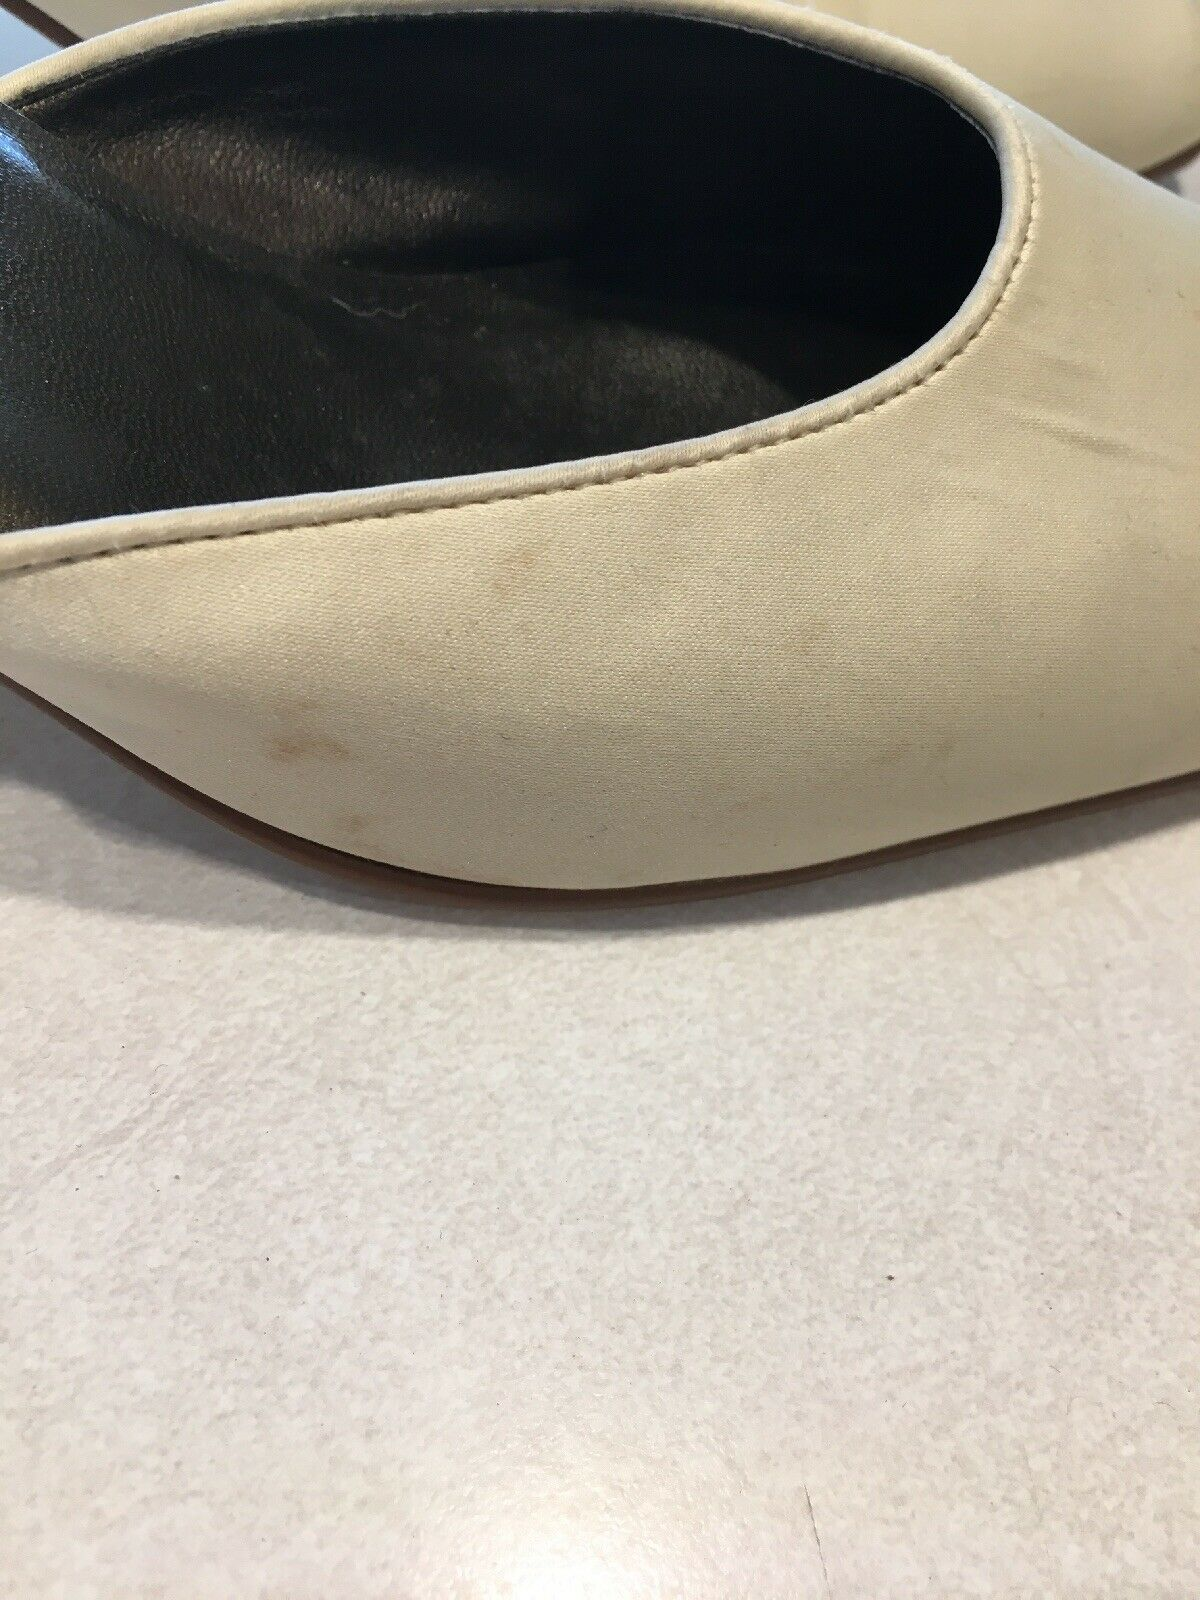 Sam And Libby 1990s Mules Sz 8 Womans - image 6